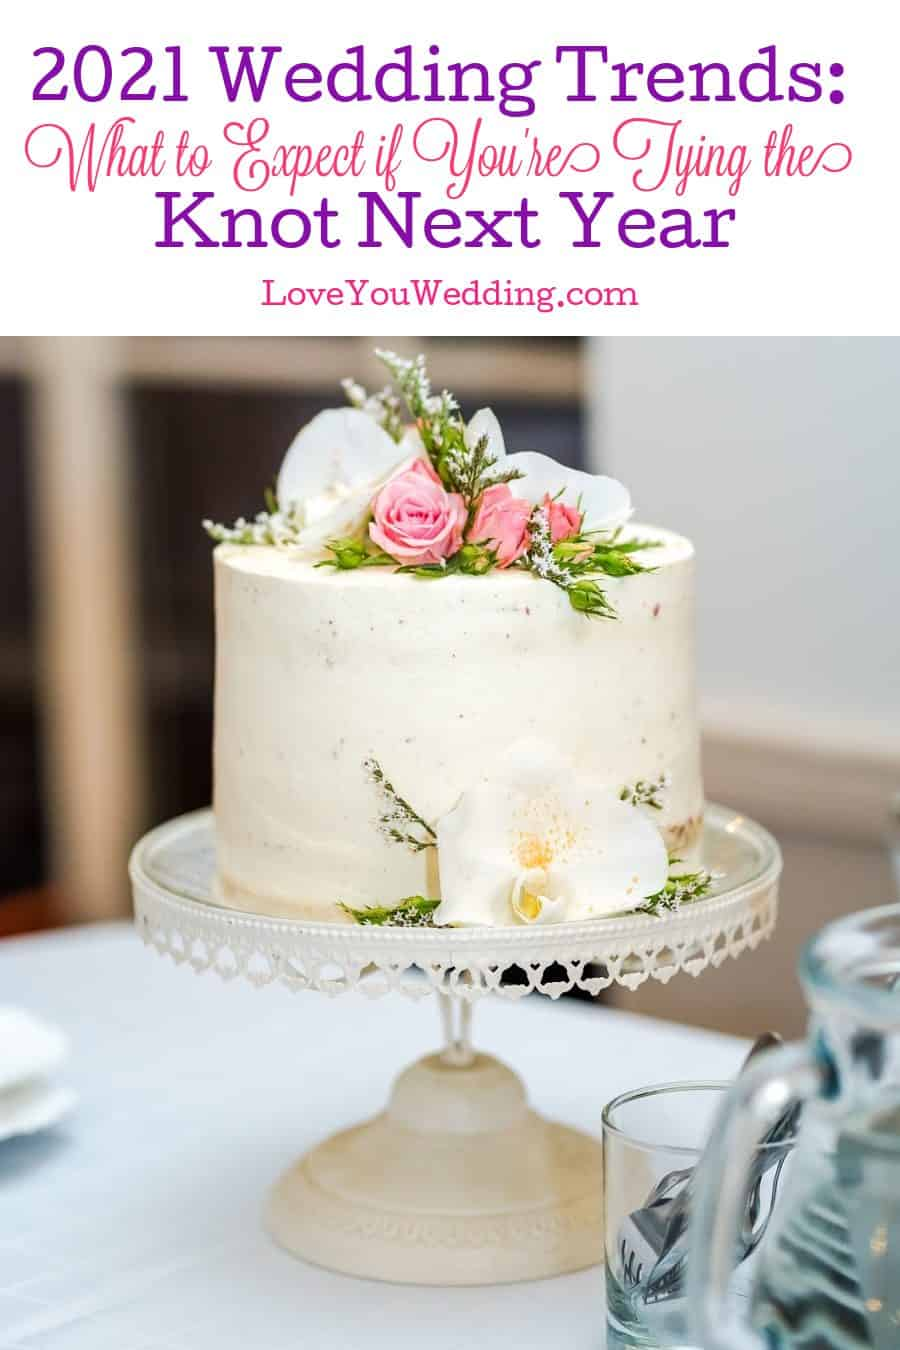 Planning to tie the knot next year? We're looking at expert predictions for 2021 wedding trends to give you an idea of what to expect!